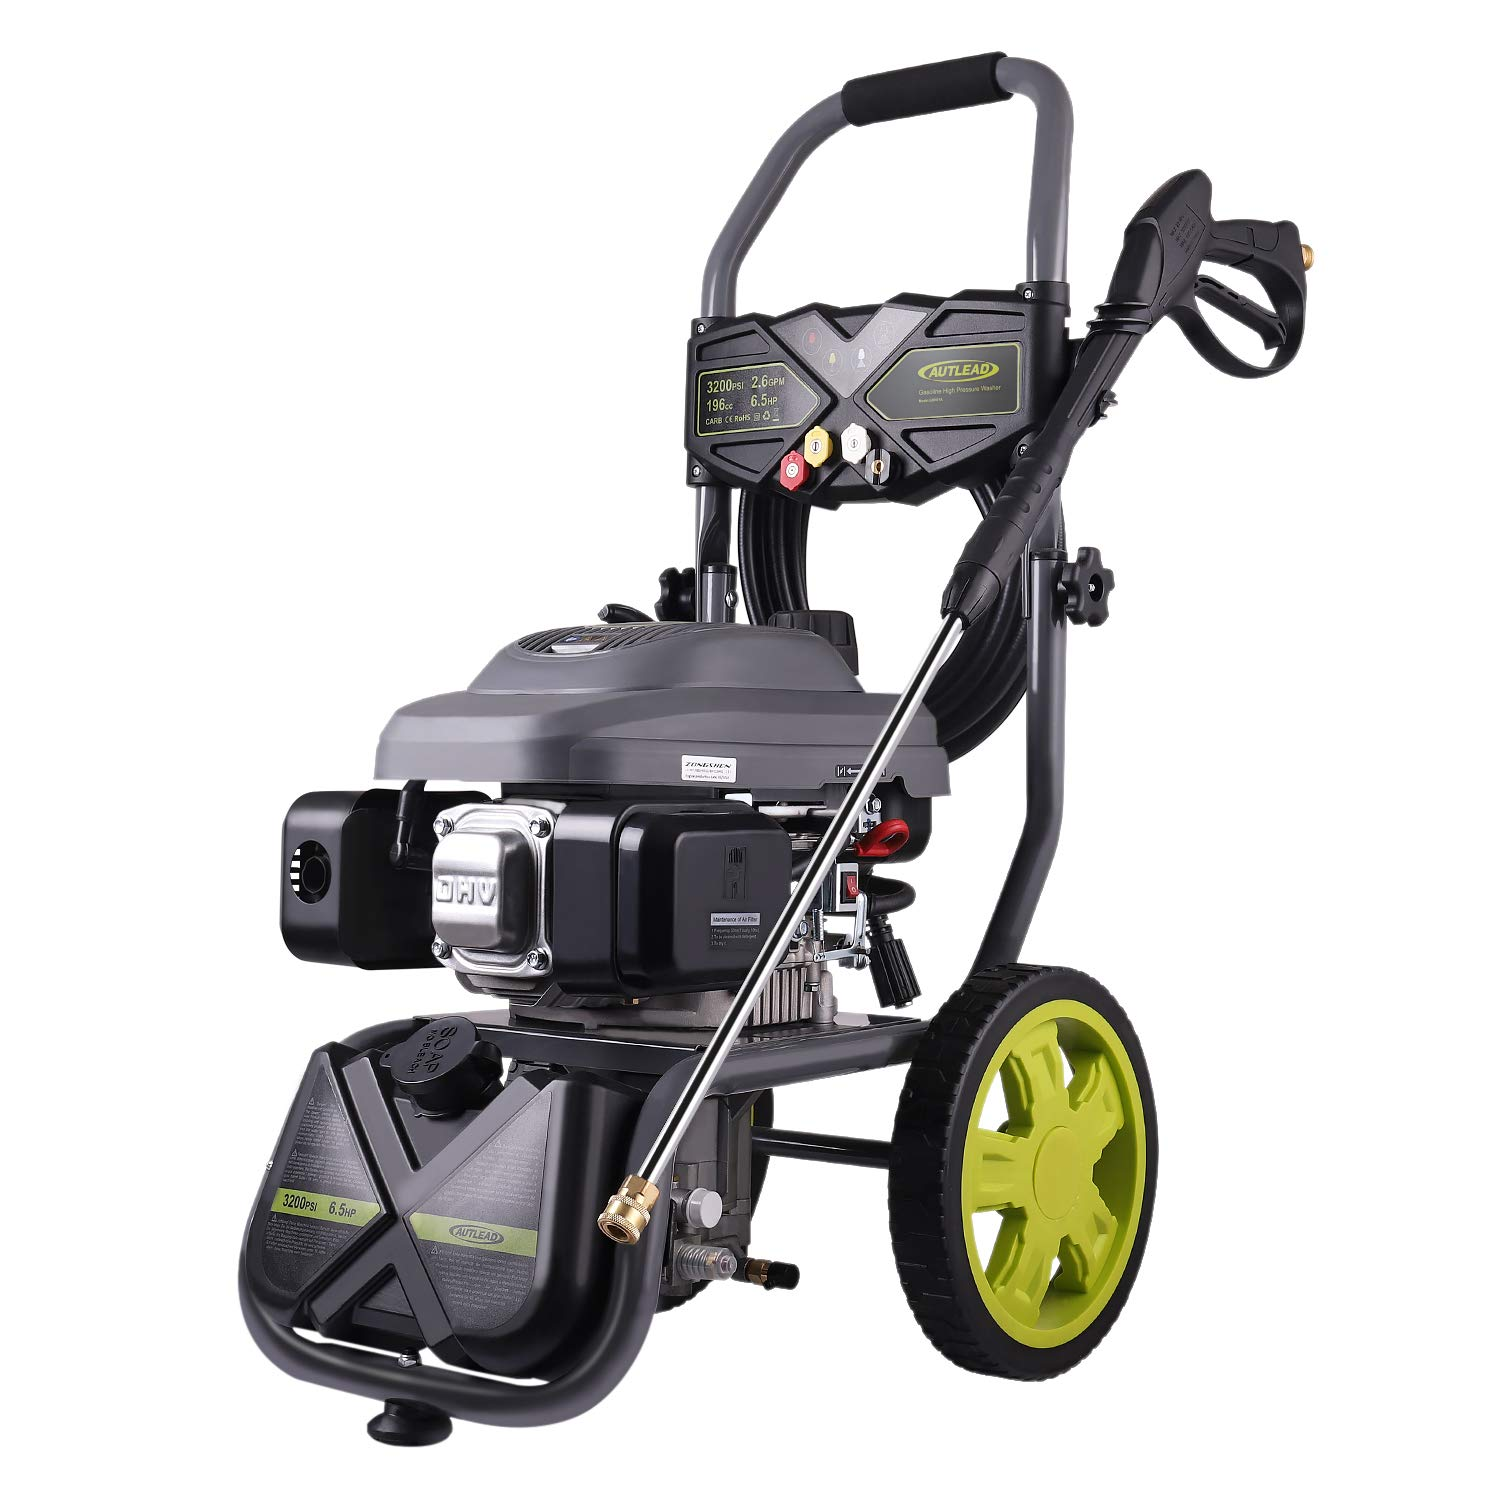 AUTLEAD Gas Pressure Washer, 3200 PSI 2.6 GPM with 6.5 HP, High-Pressure Washer Cleaner Powered by 196cc Engine, 4 Nozzles and 3L Detergent Tank, GSH02A